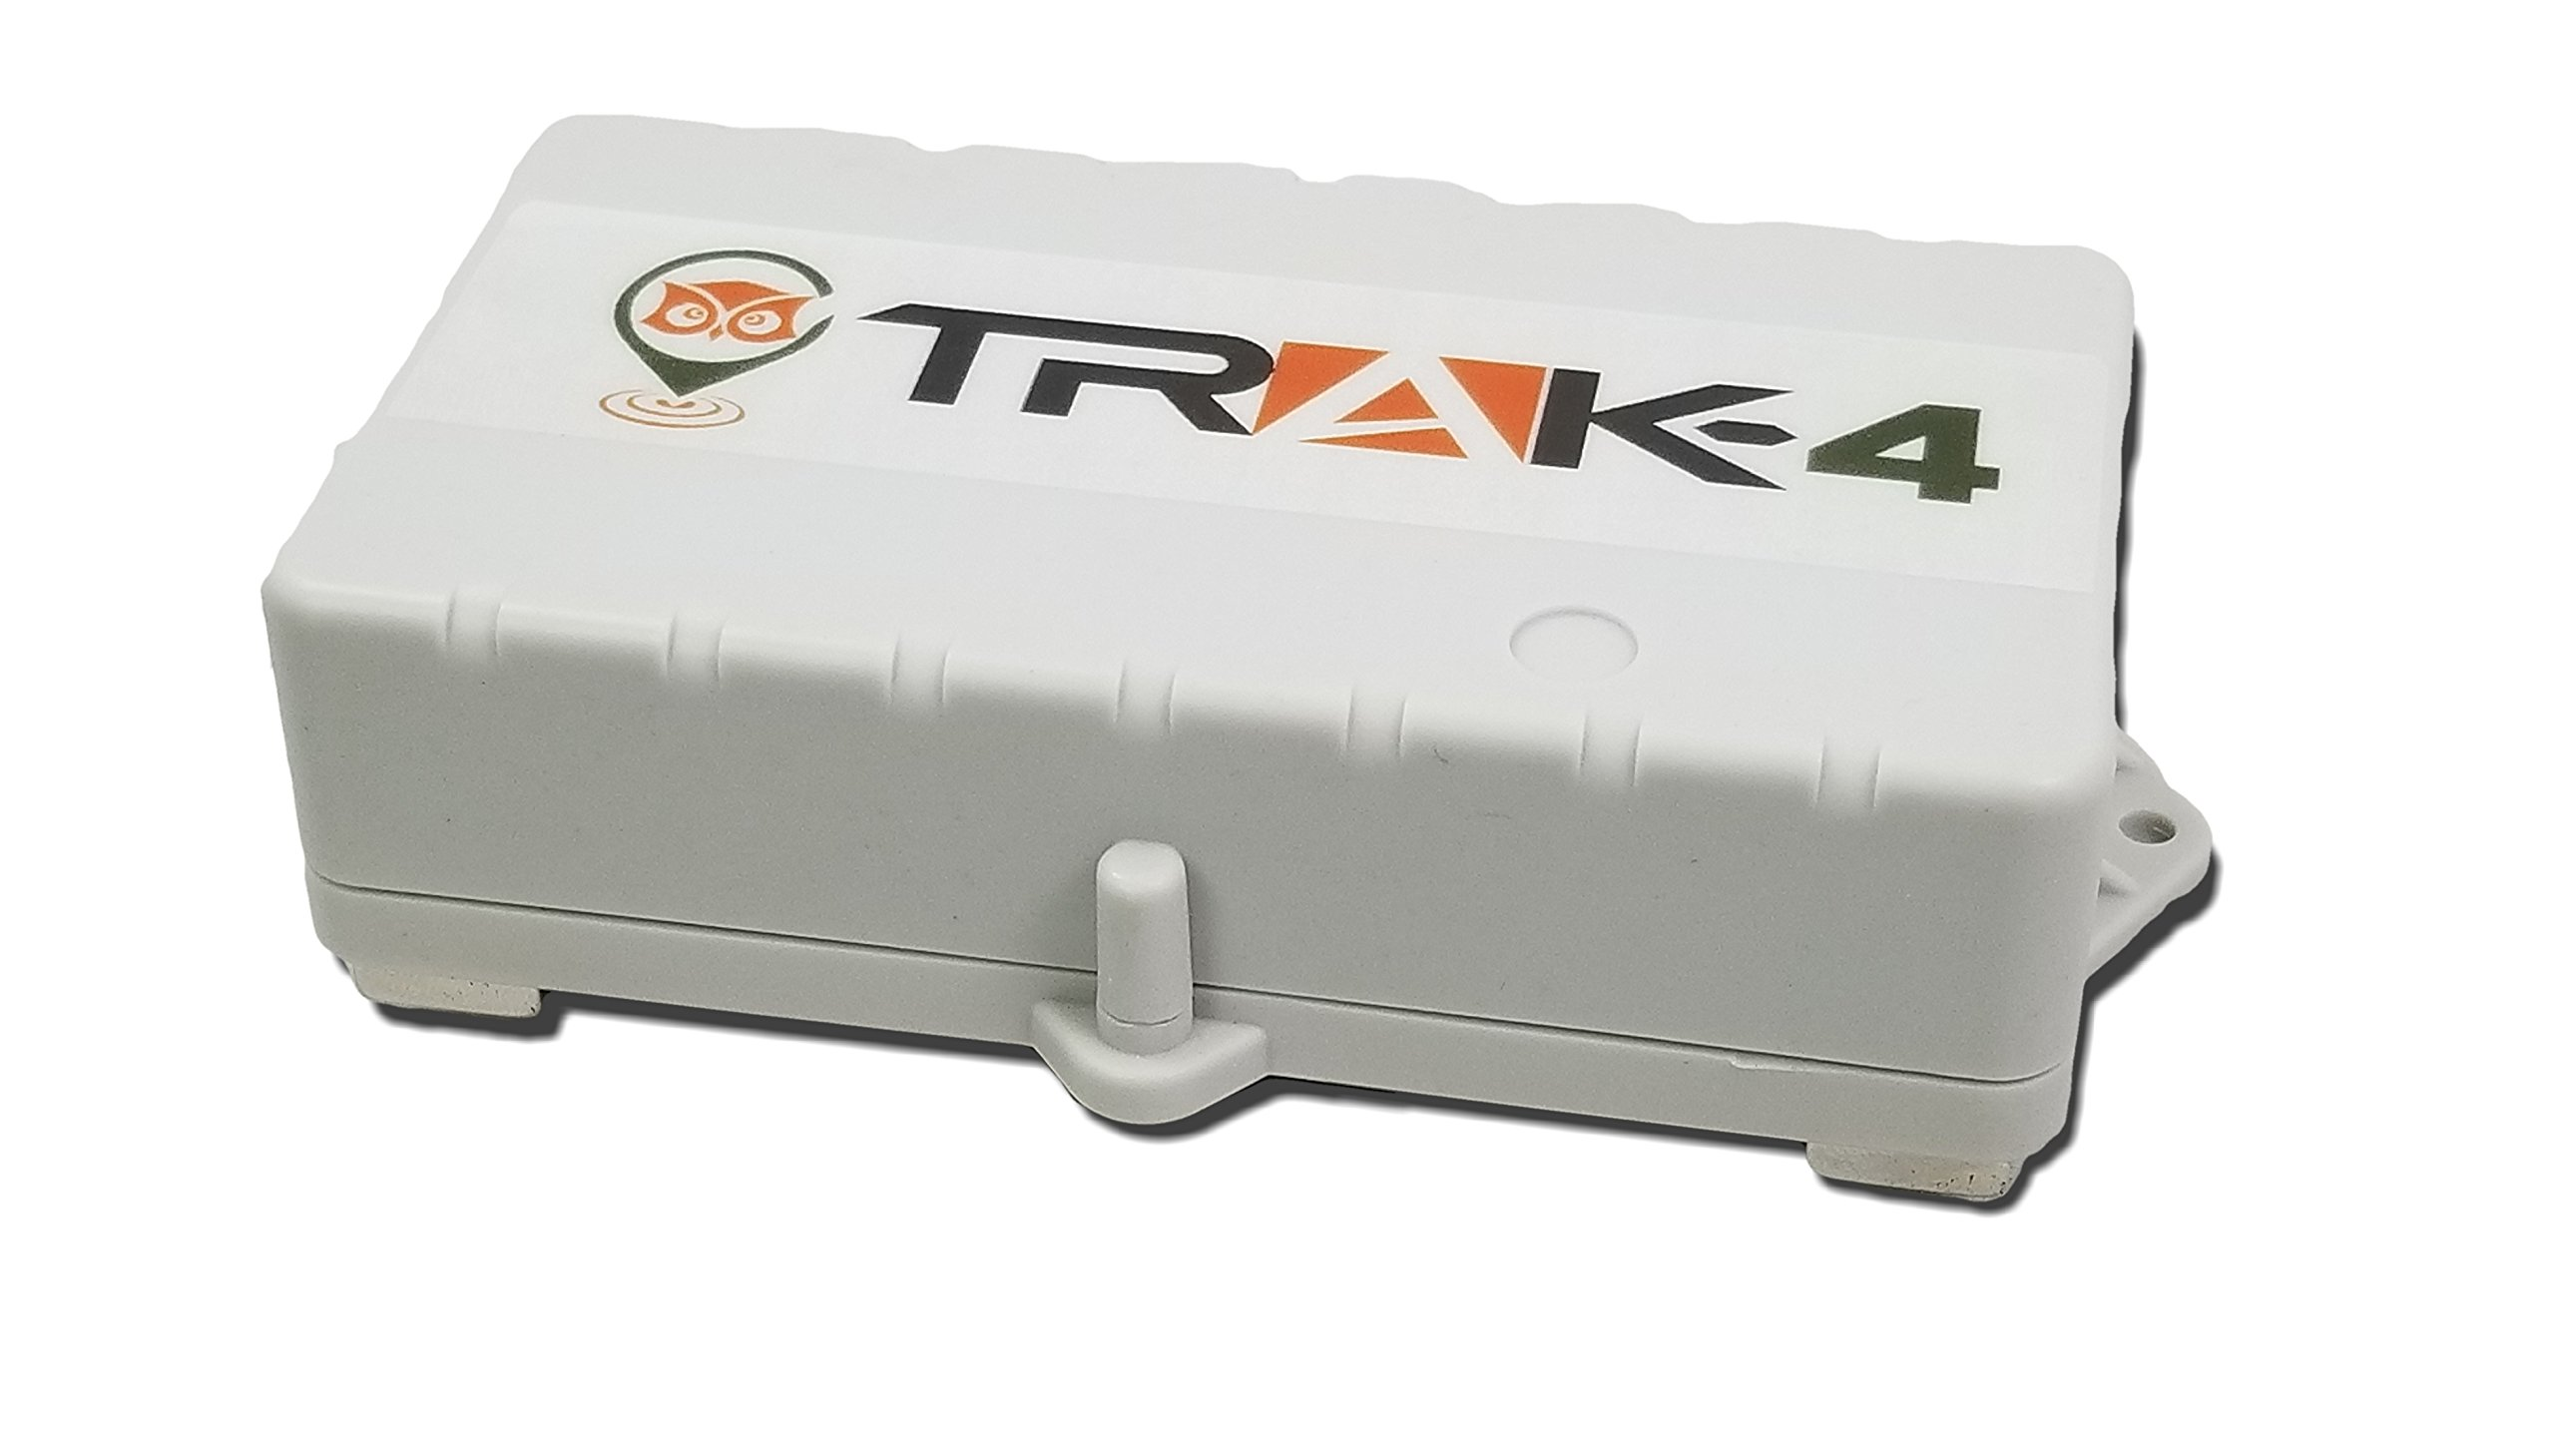 NEW Trak-4 MAG Magnetic Covert Real Time Personal Vehicle GPS Tracker Portable Mini Asset Tracker No Contracts Long Battery Life Best Cell Network Coverage by Trak (Image #1)